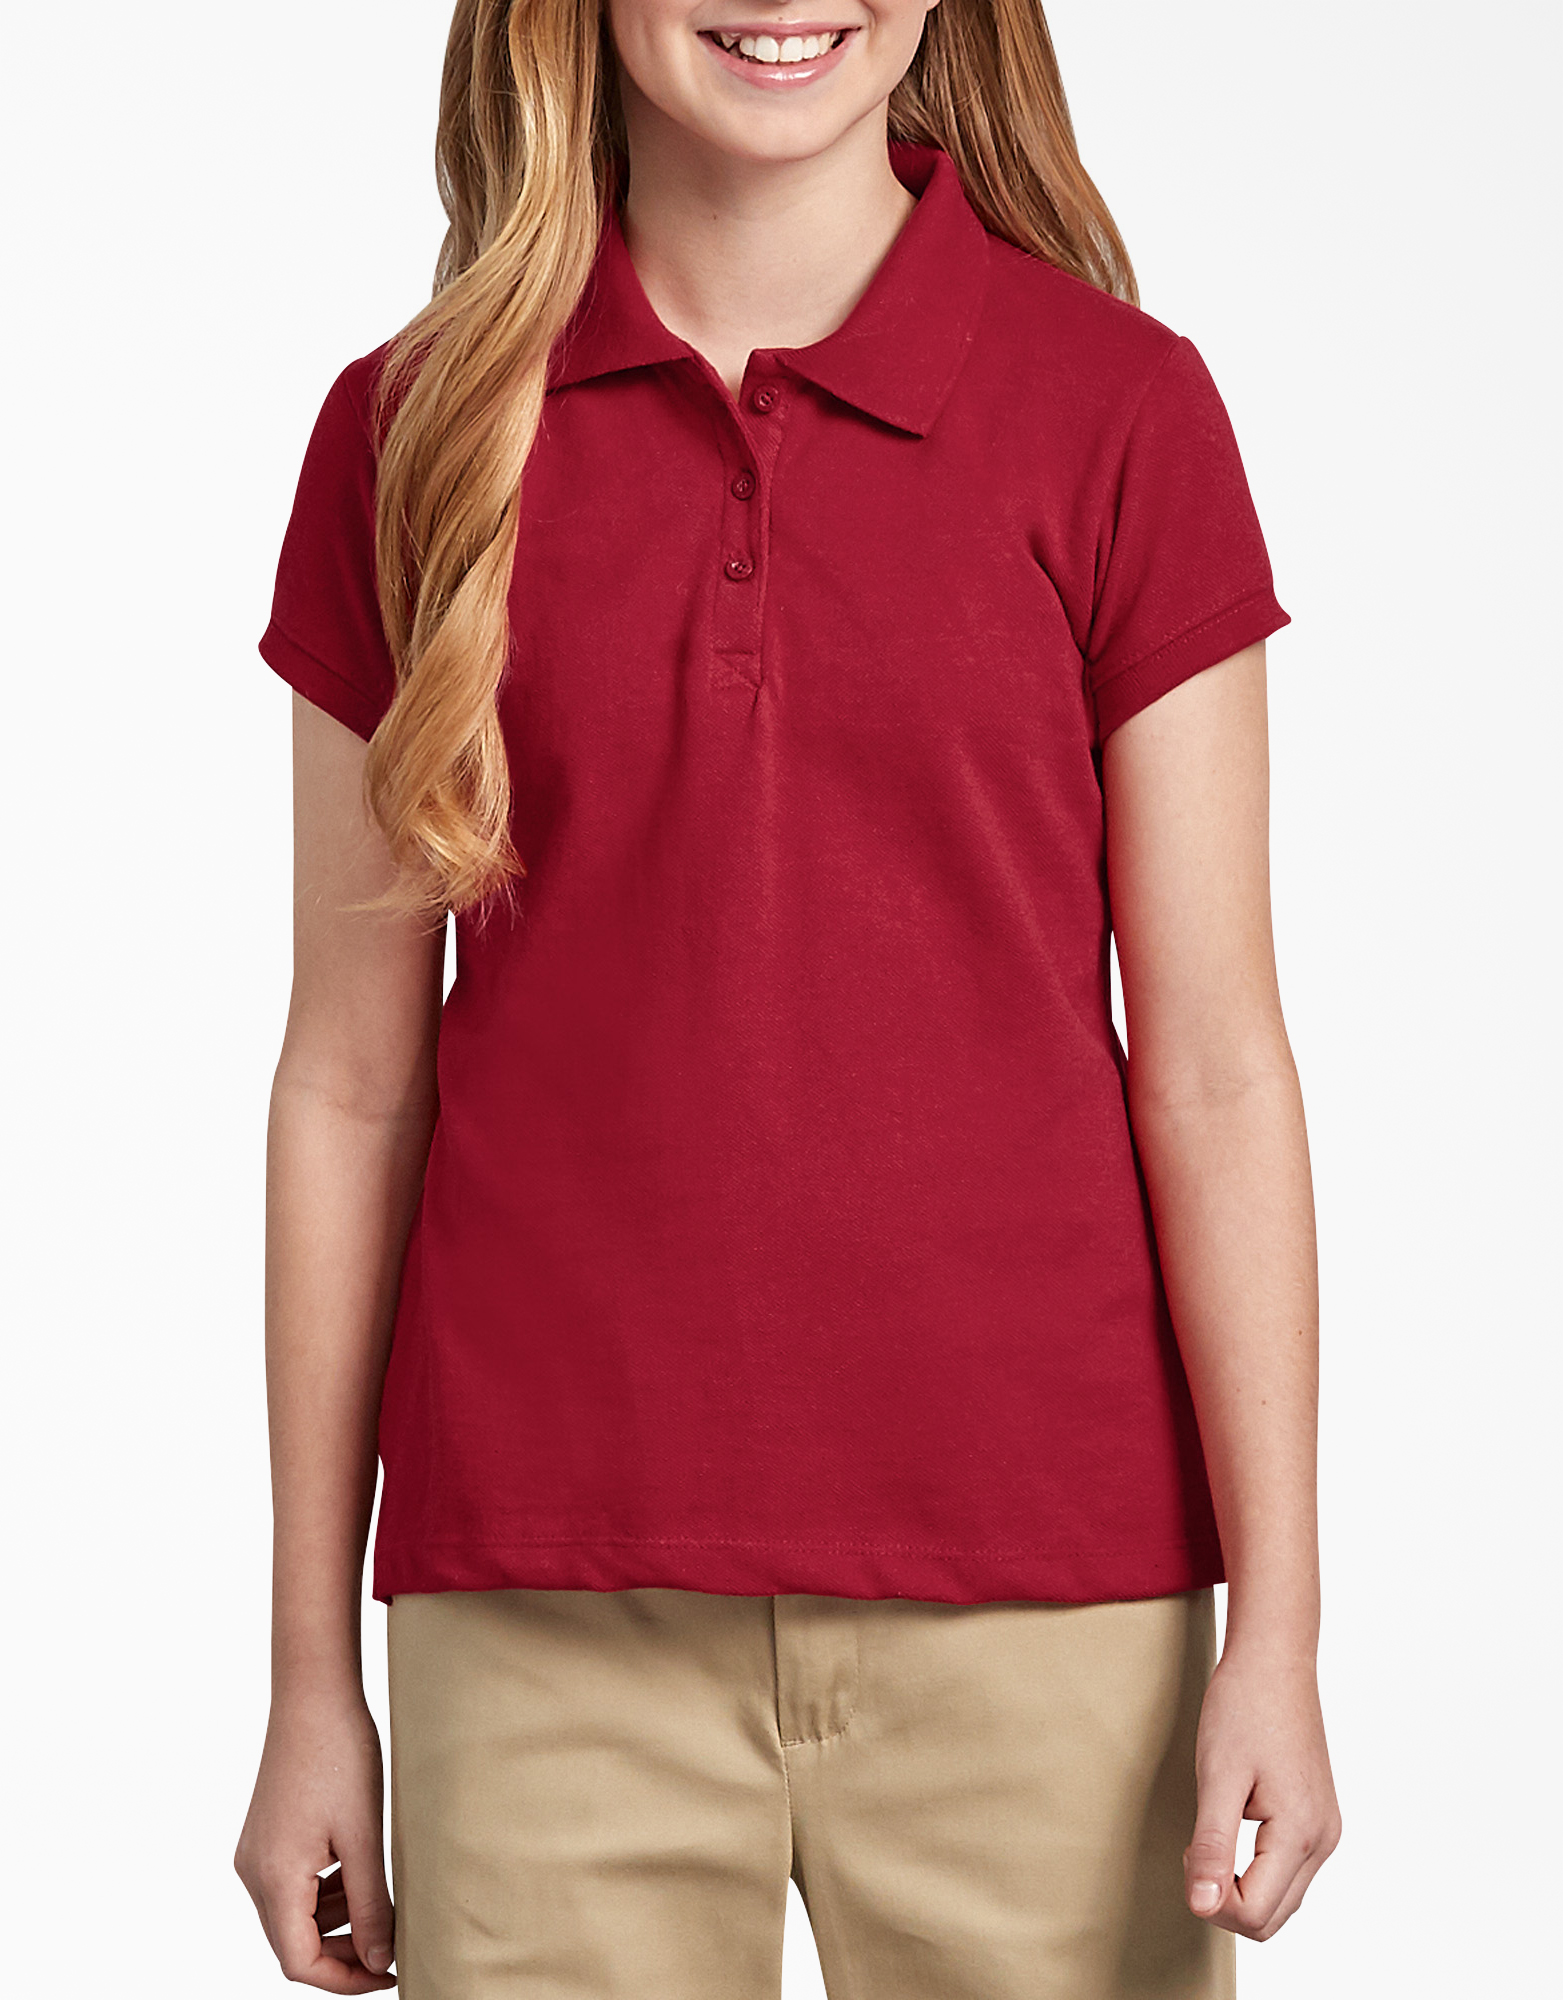 Girls' Short Sleeve Pique Polo Shirt,  7-20 - English Red (ER)